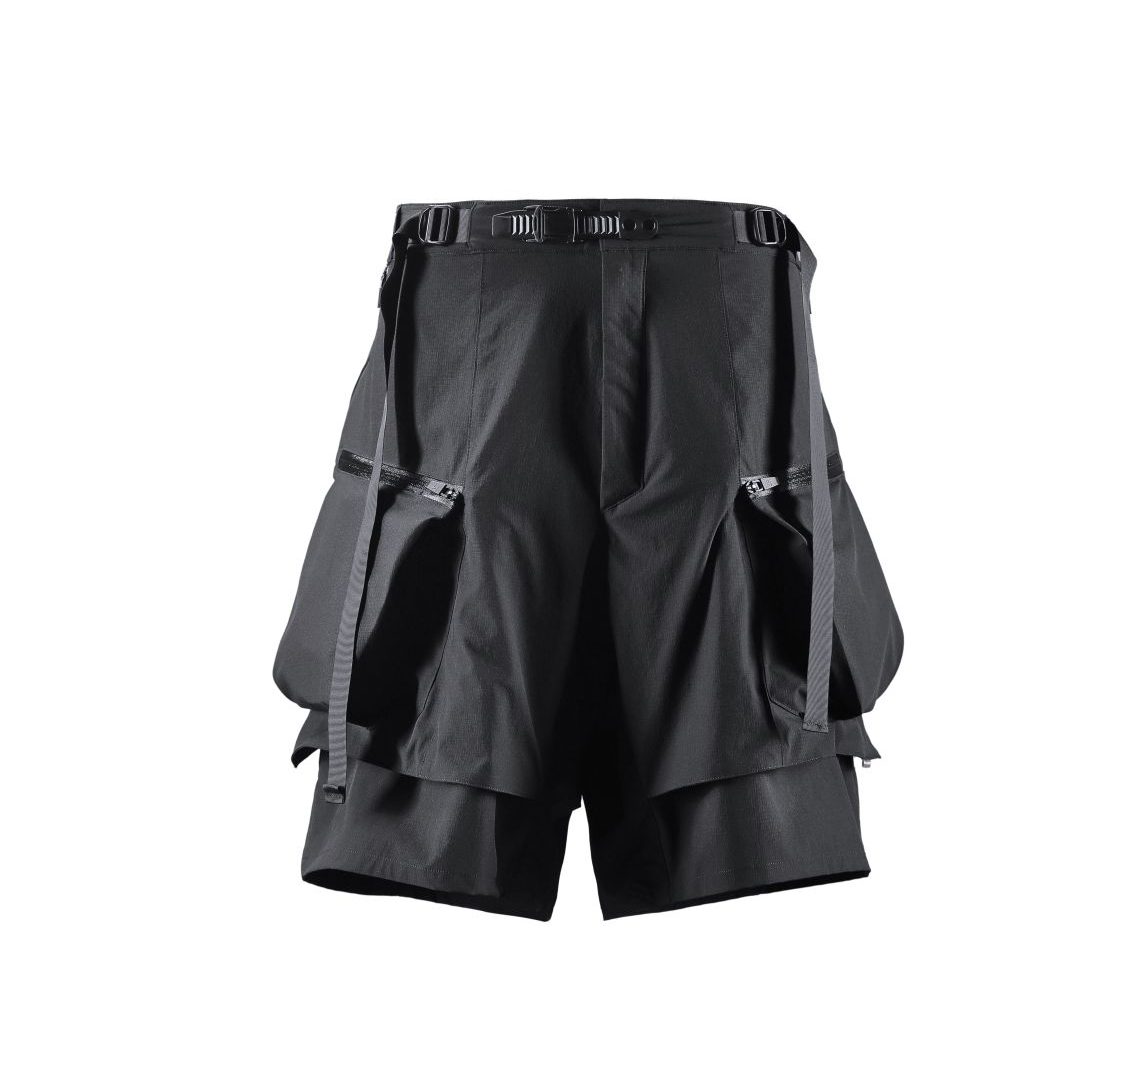 Reindee Lusion Black 3D Molle Expansion Techwear Cargo Shorts